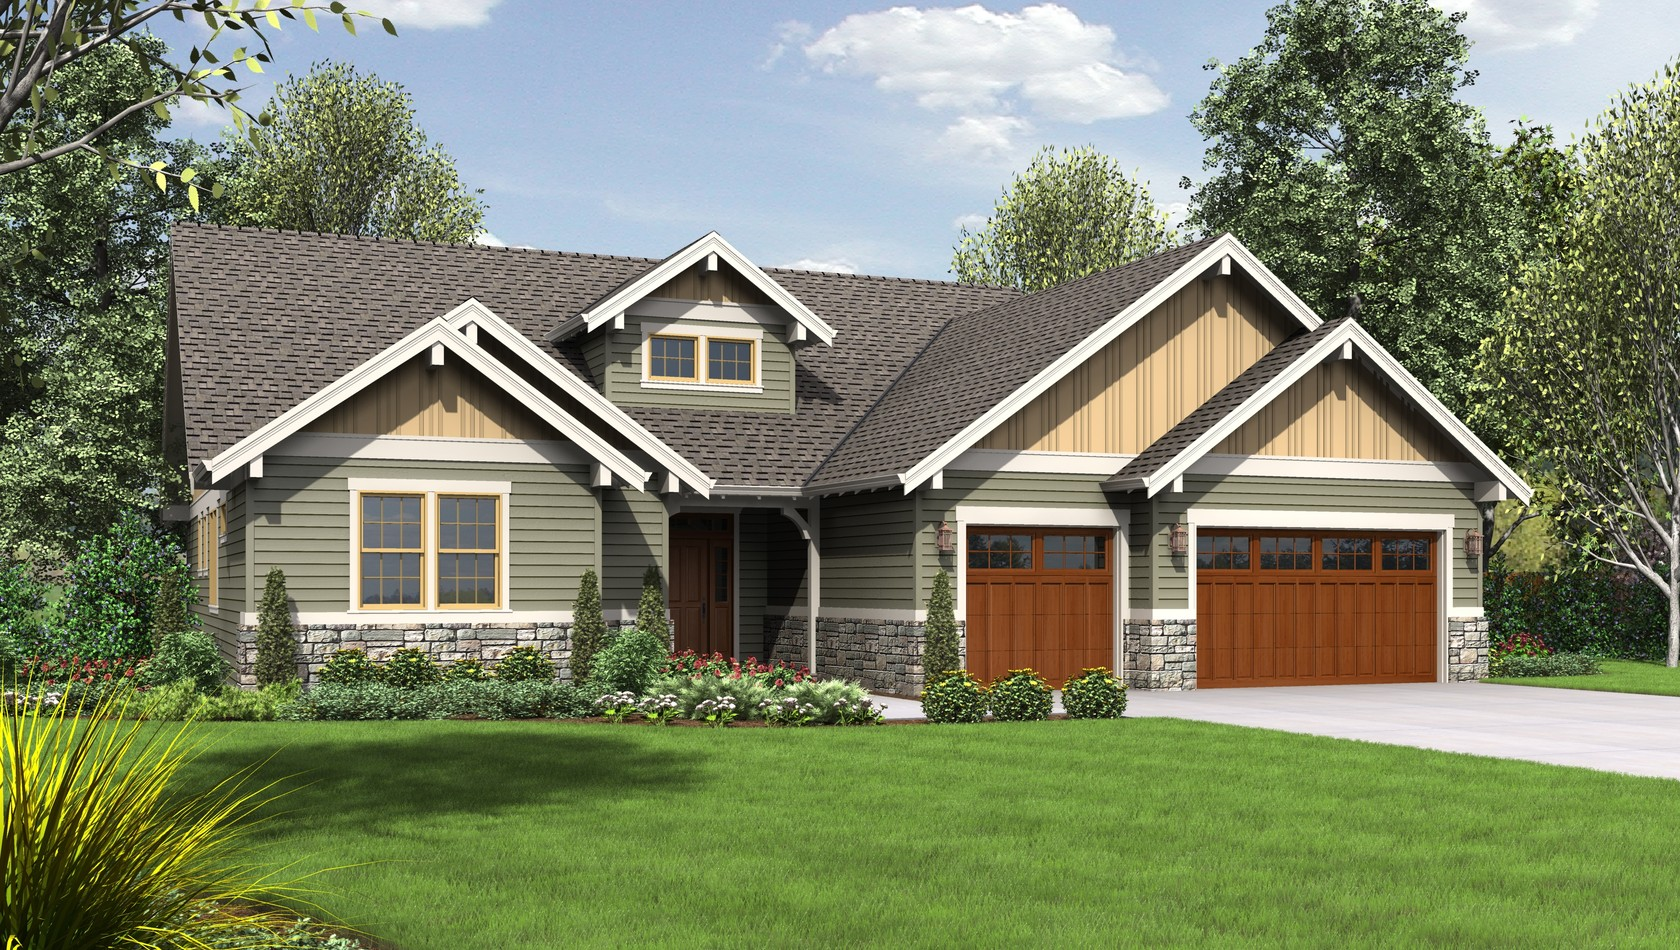 Mascord House Plan 1245C: The Lincoln